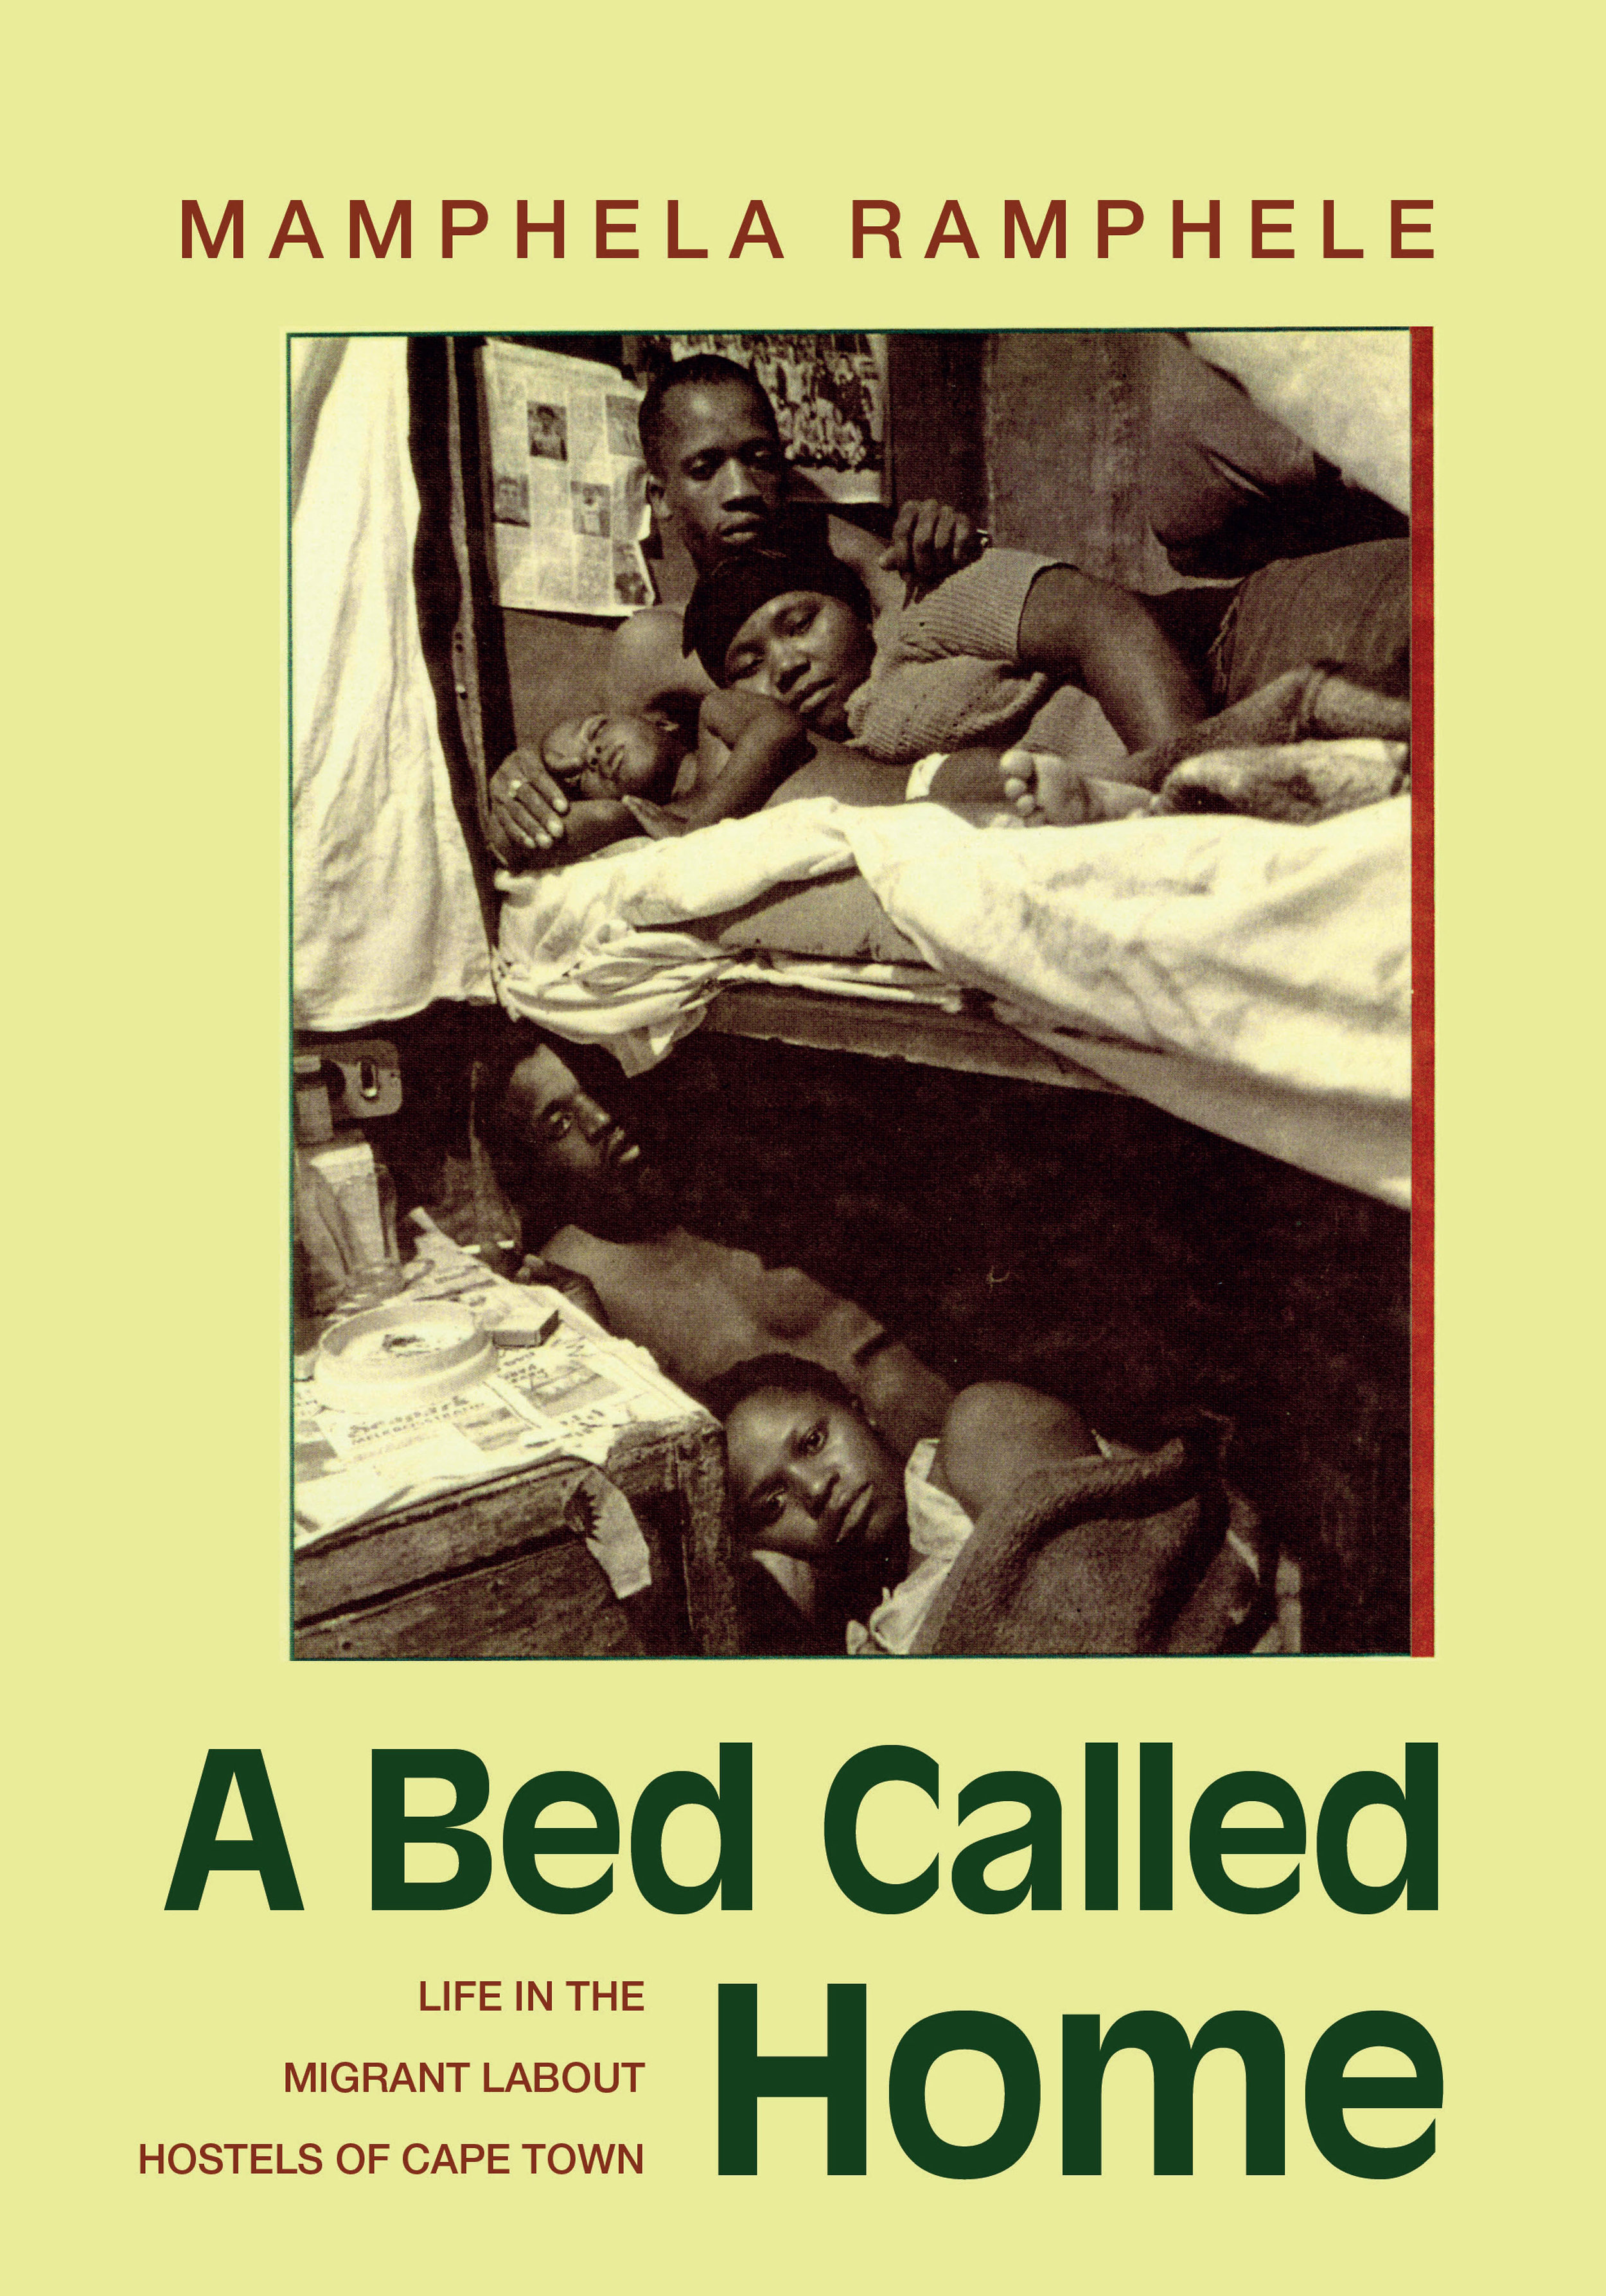 A Bed Called Home - Mamphela Ramphele